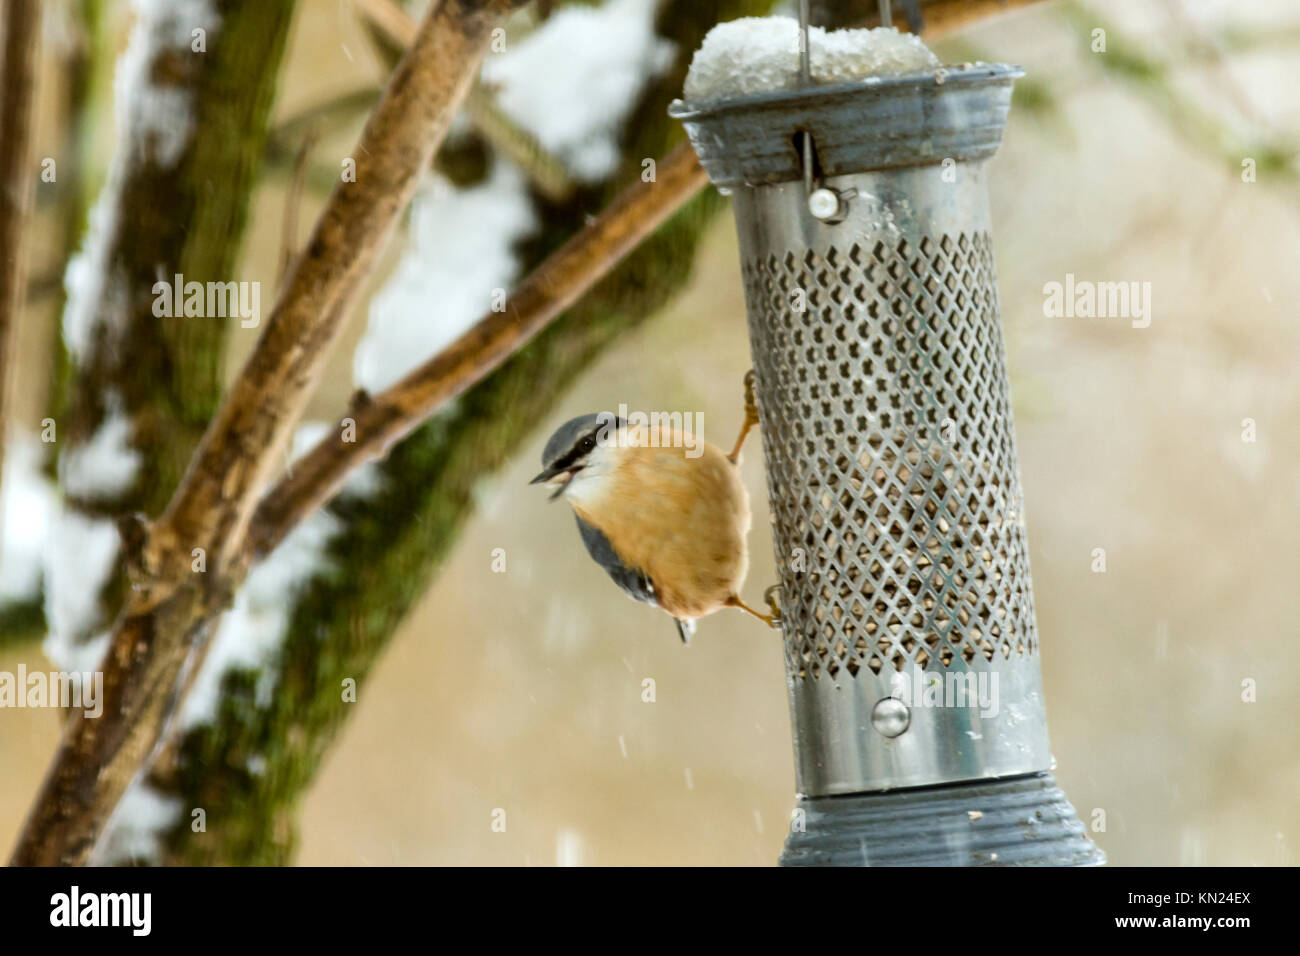 Burton Lazars December 10th 2017: Garden birds during cold snaps depend highly on garden bird feeders for that little - Stock Image